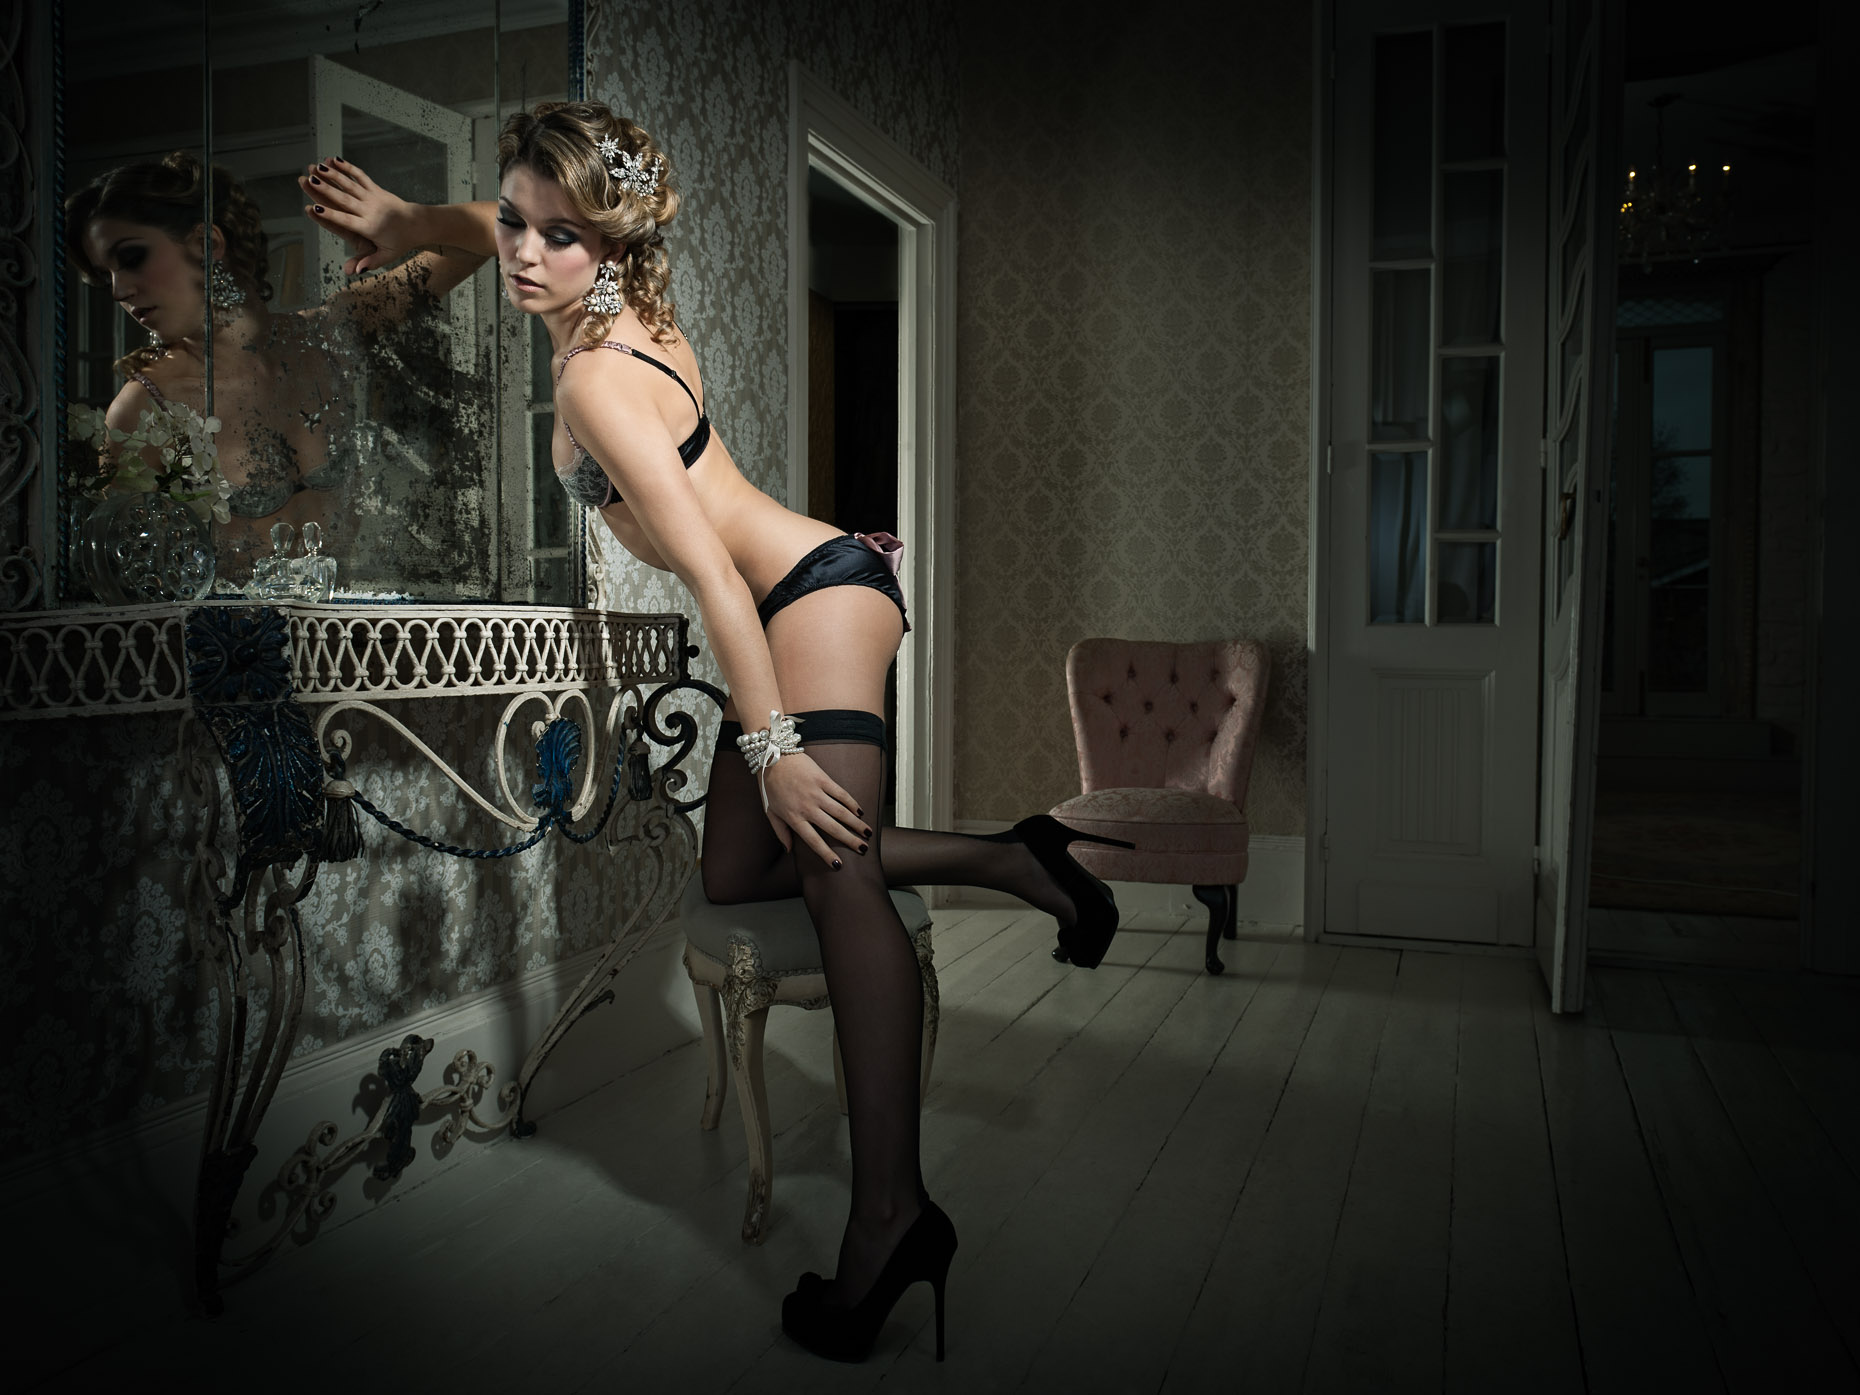 Charlotte-holmes-in-lingerie-kneeling-on-a-chair